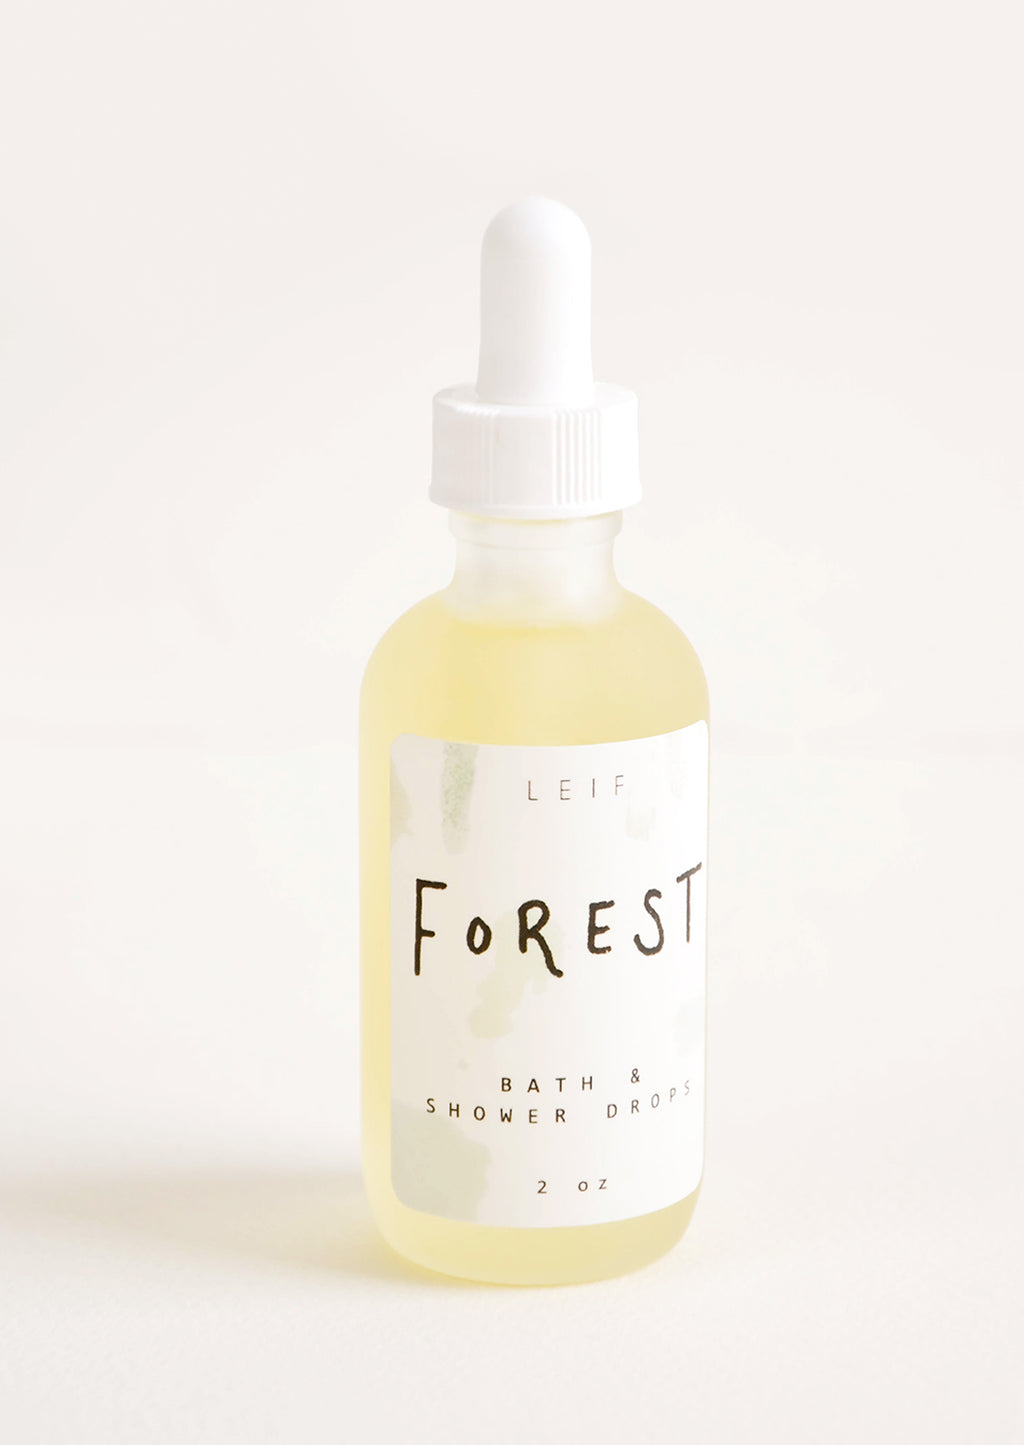 "Forest: A small frosted glass dropper bottle with a white lid and a label reading ""forest"" filled with a pale yellow liquid."